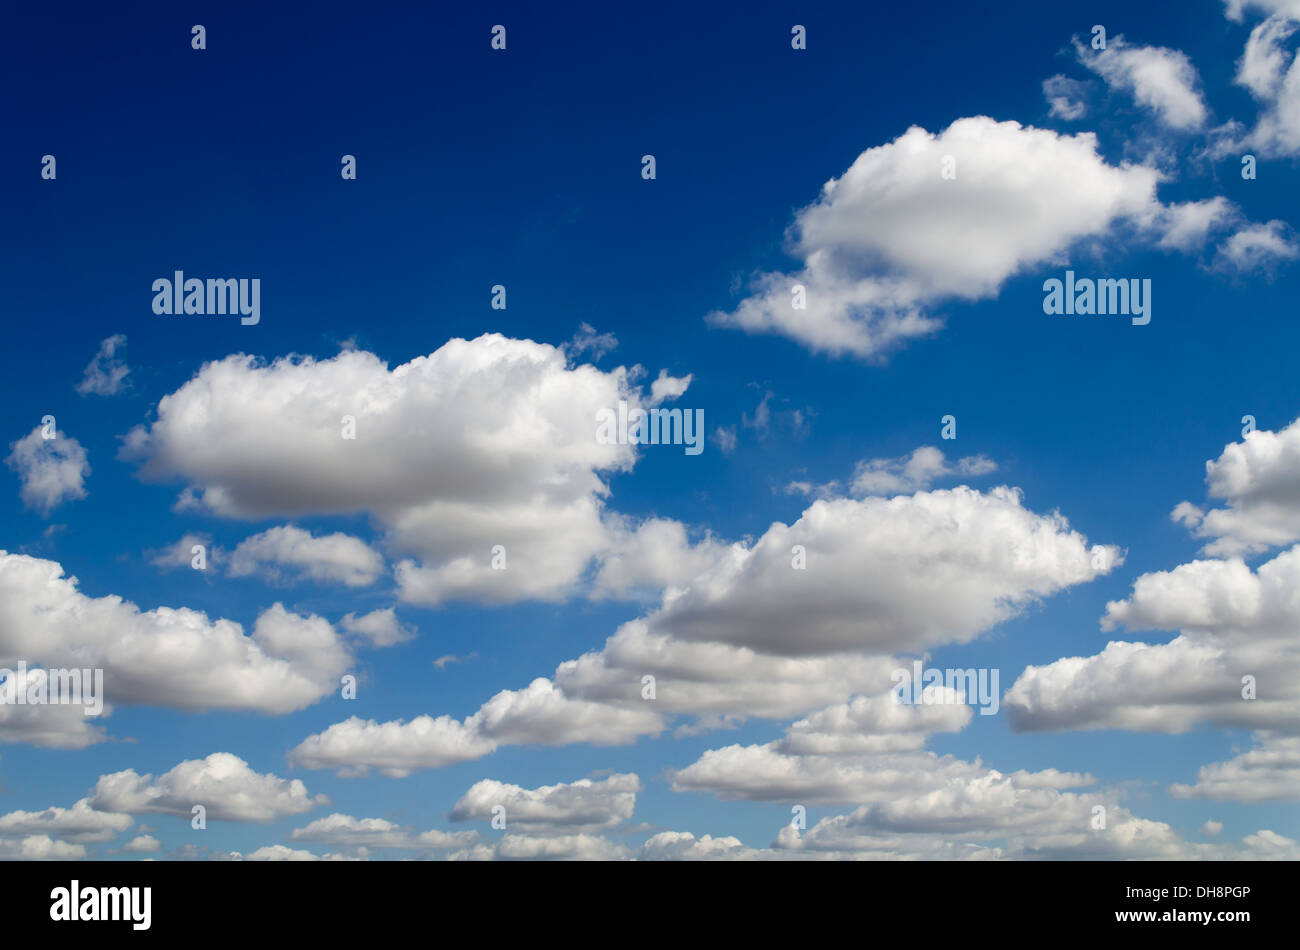 Clouds floating in a blue sky Stock Photo